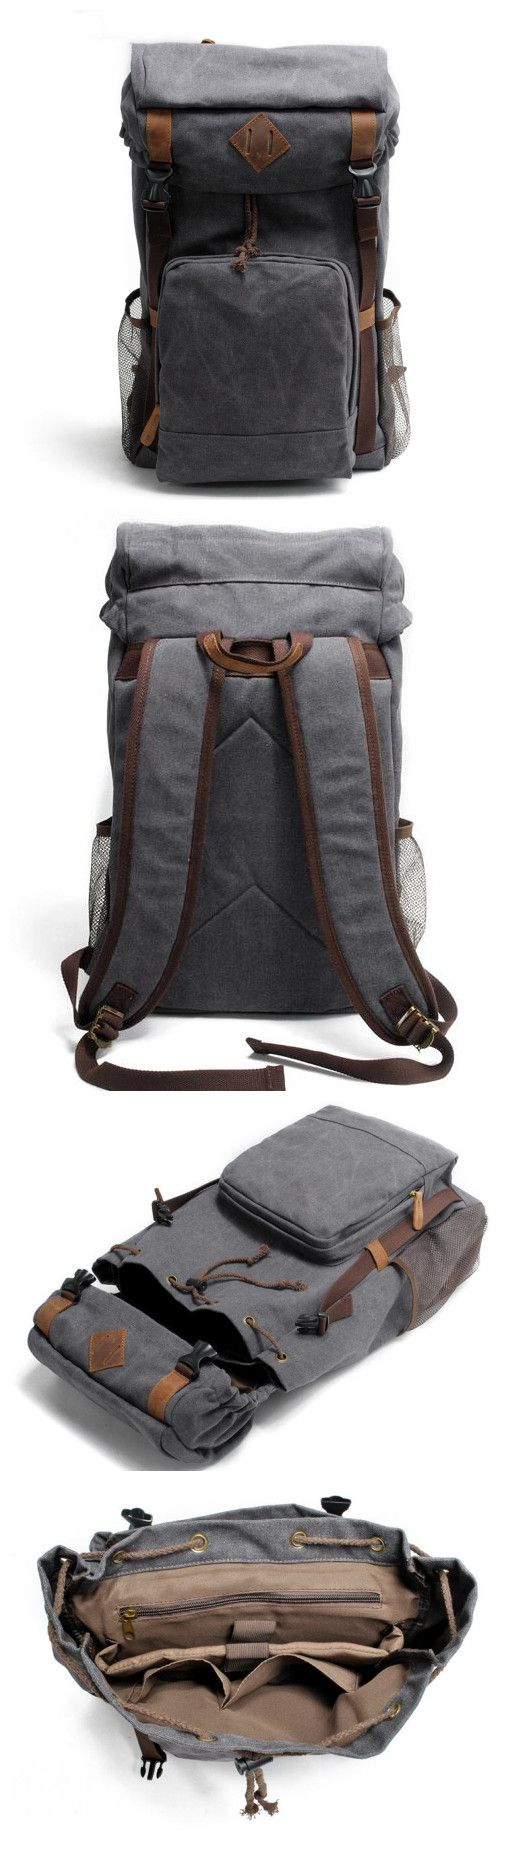 Canvas Backpack Rucksack School Backpack • Fabric Lining • Inside zipper pocket • It can hold a 17'' laptop, iPad, A4 document files, magazines, etc. ********************** Specifications: Length: 31c